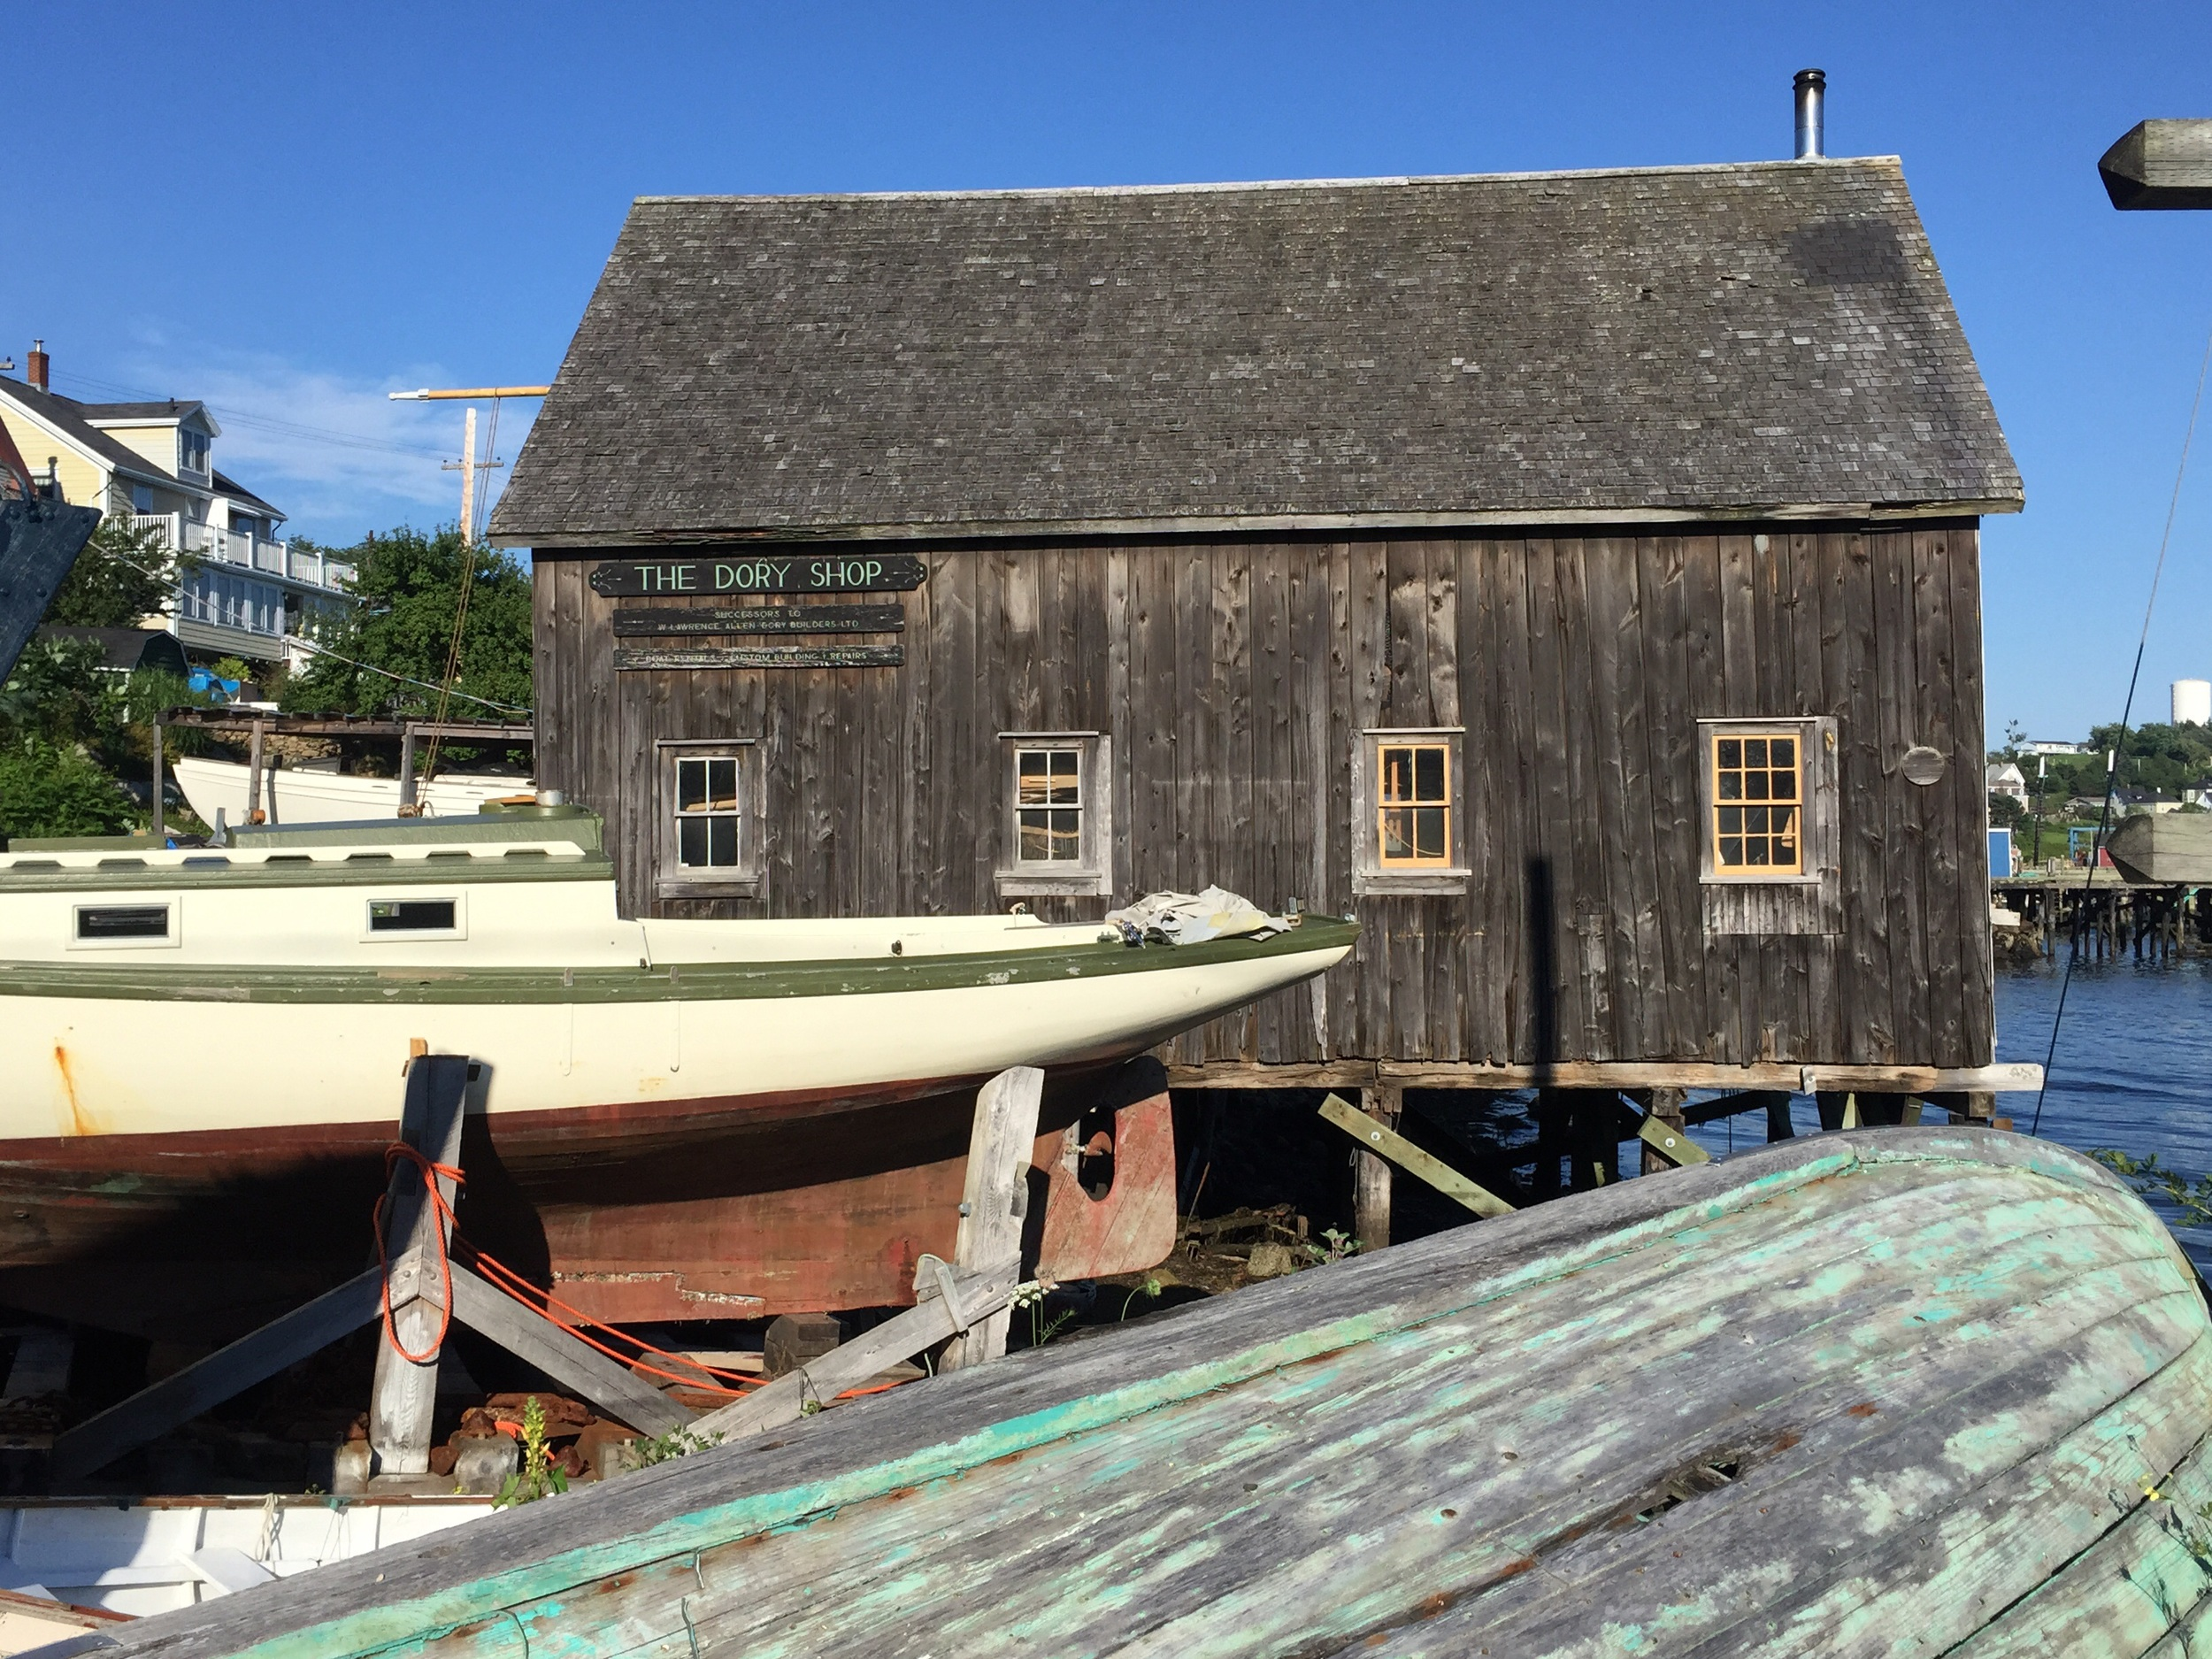 The Dory Shop in Lunenburg.